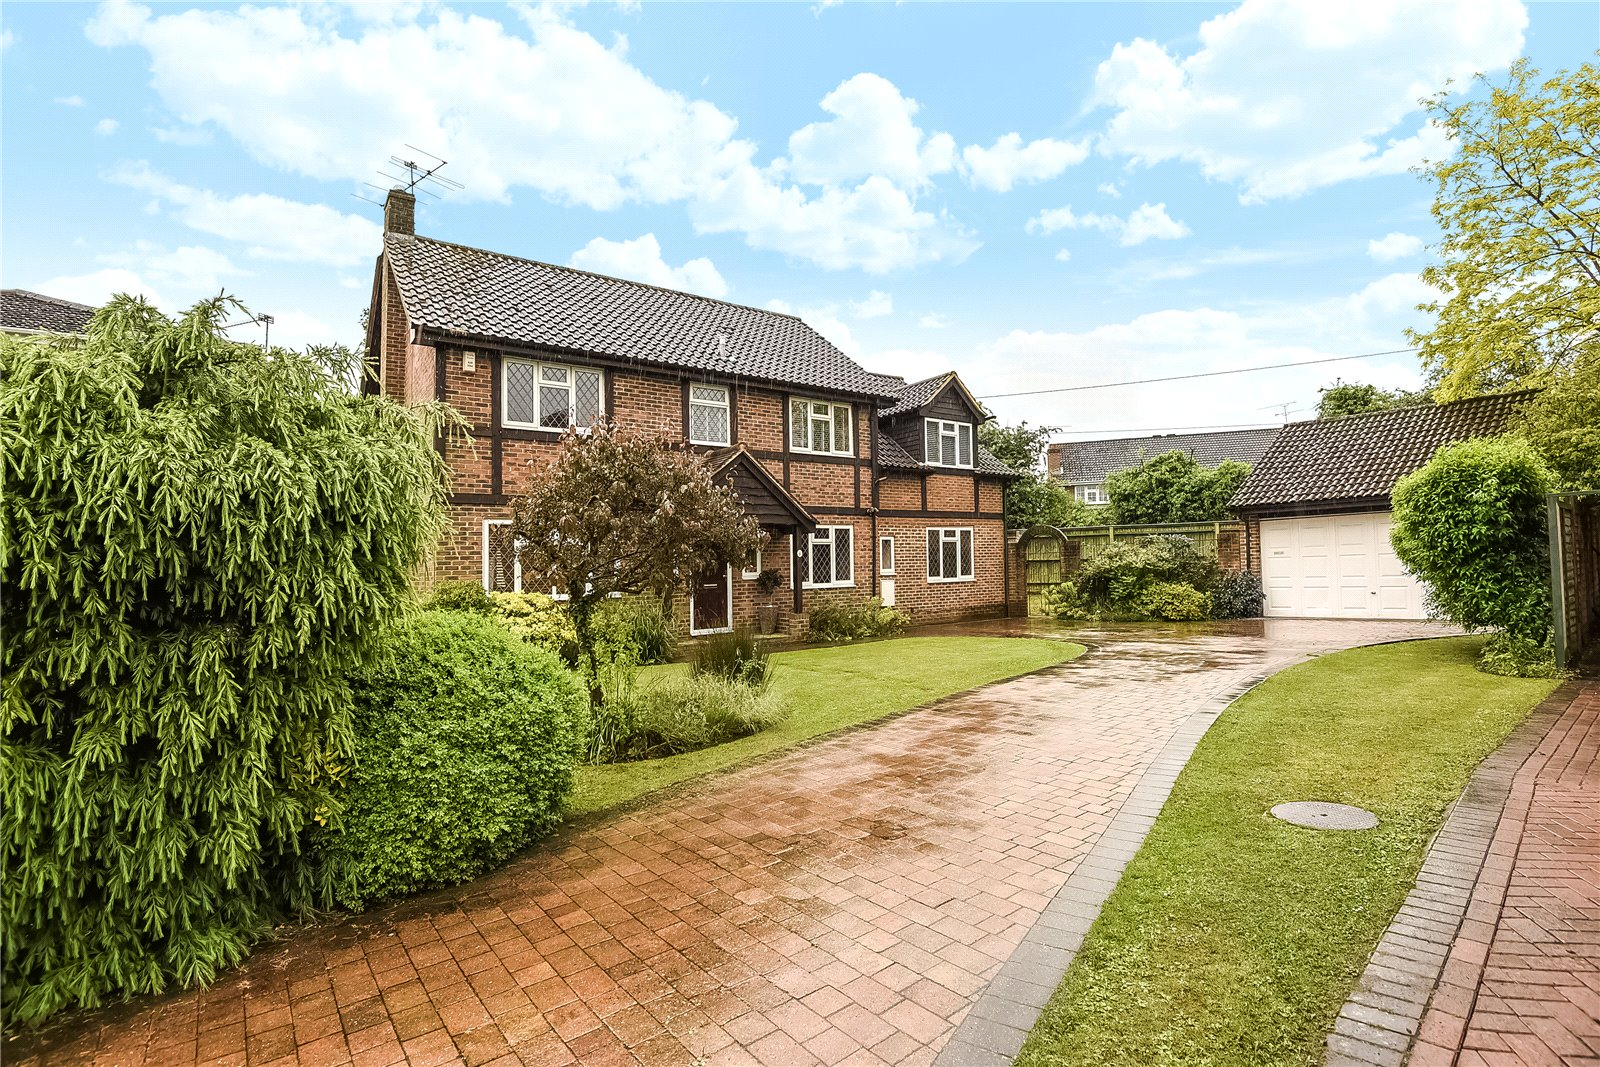 5 Bedrooms Detached House for sale in Clarendon Close, Winnersh, Wokingham, Berkshire, RG41